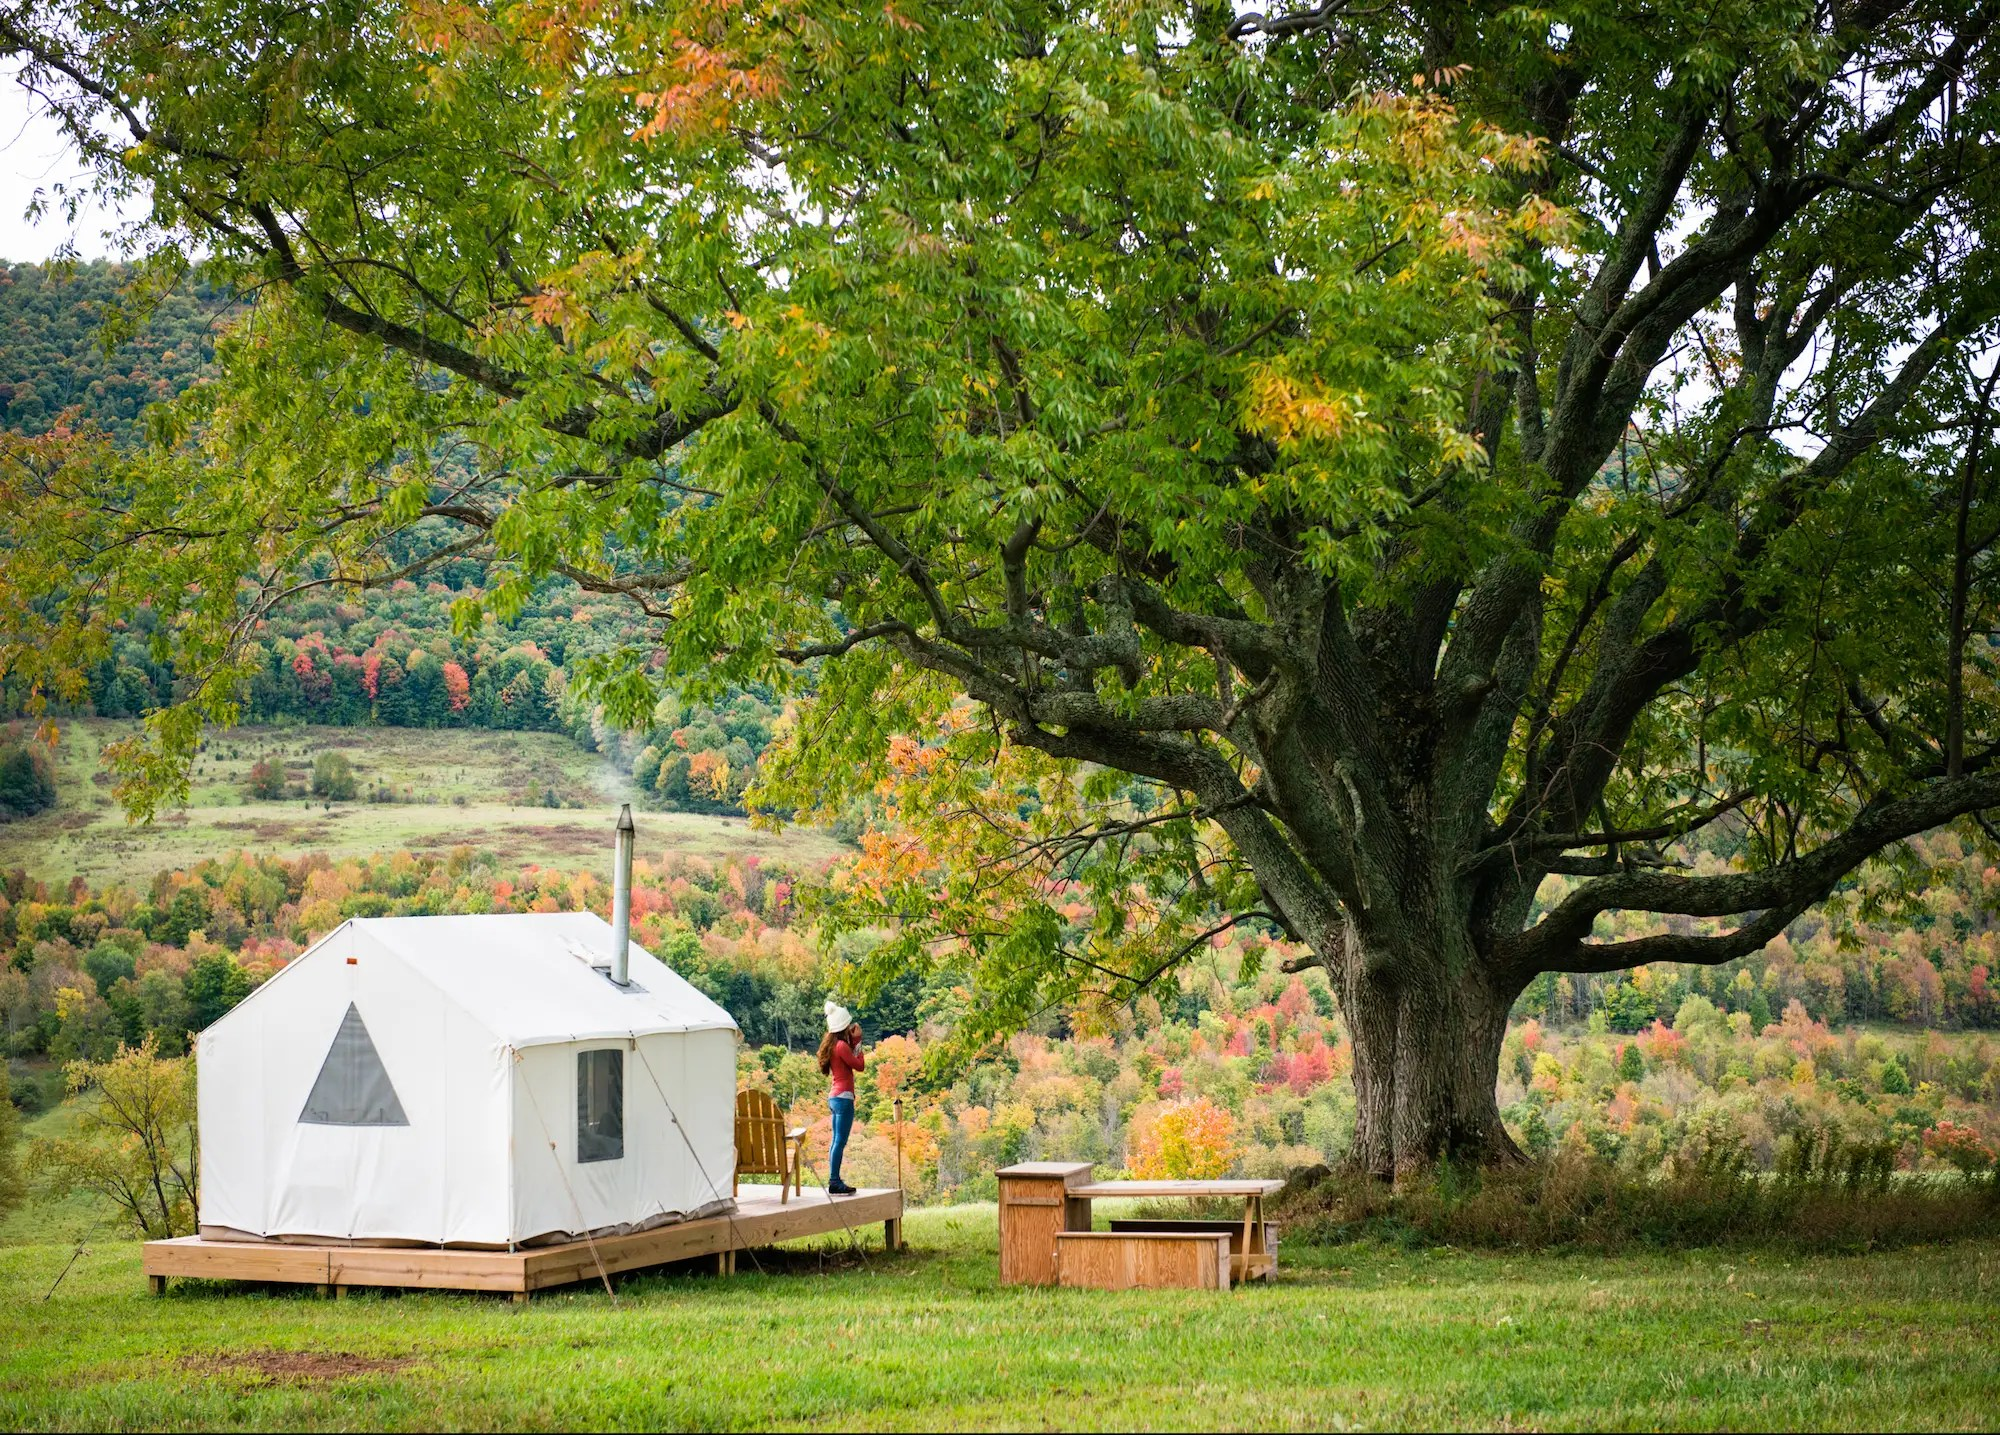 During the fall, users flock to campsites with expansive vistas. Some landowners offer amenities, like guided hikes, gourmet meals, and foraging outings, for a fee.